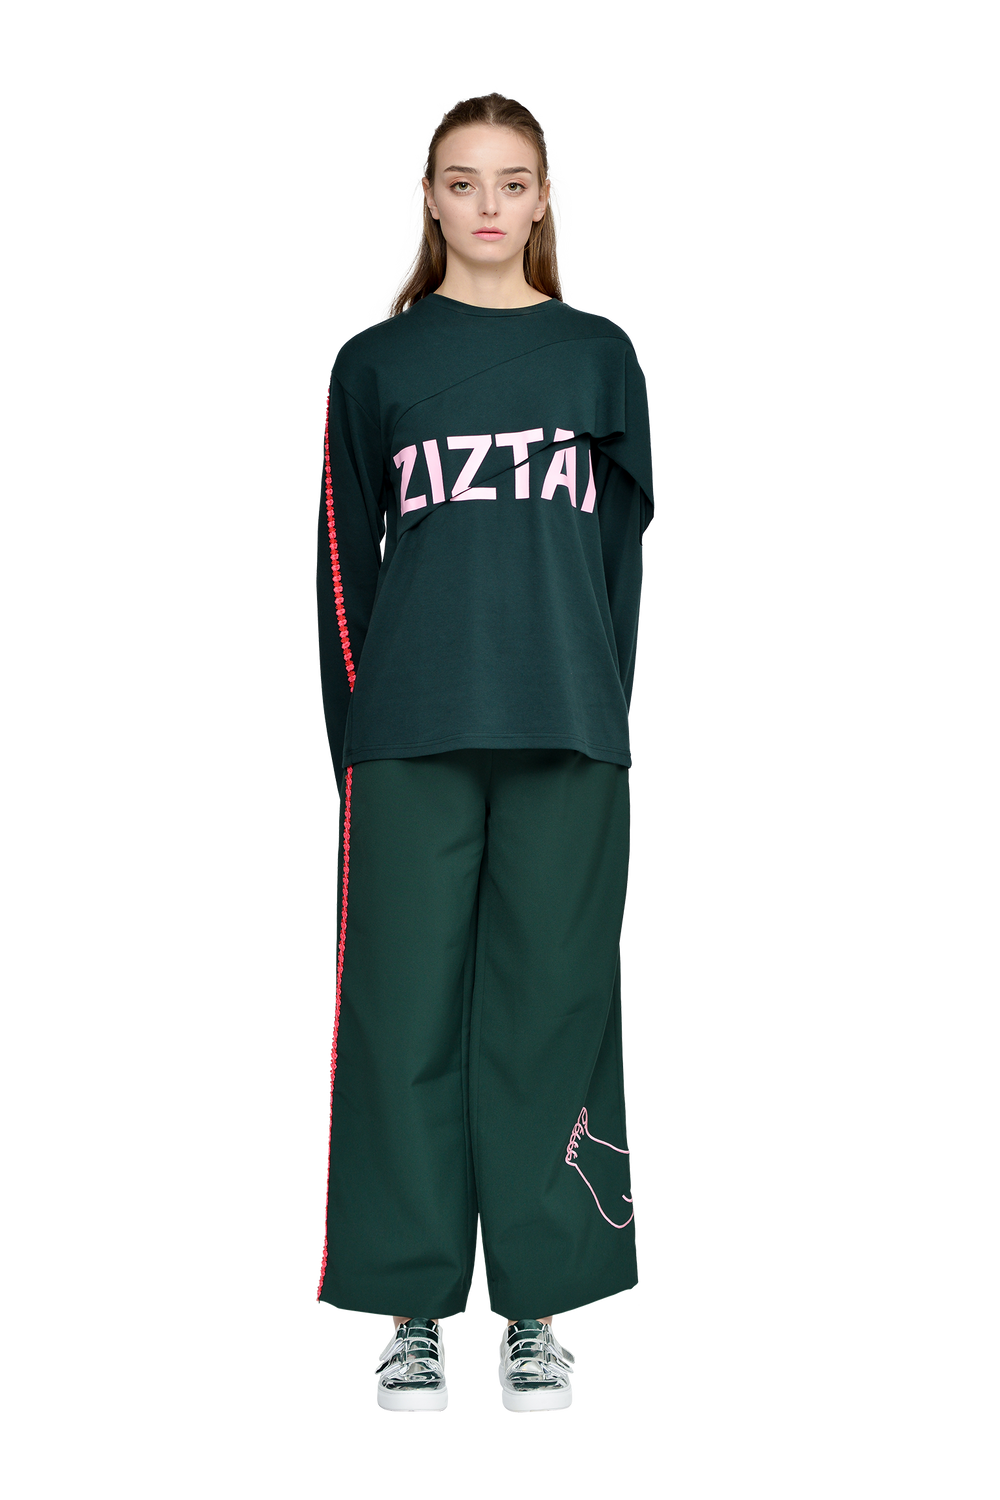 ZIZTAR Heart and Feet Wide Leg Pants - ZIZTAR